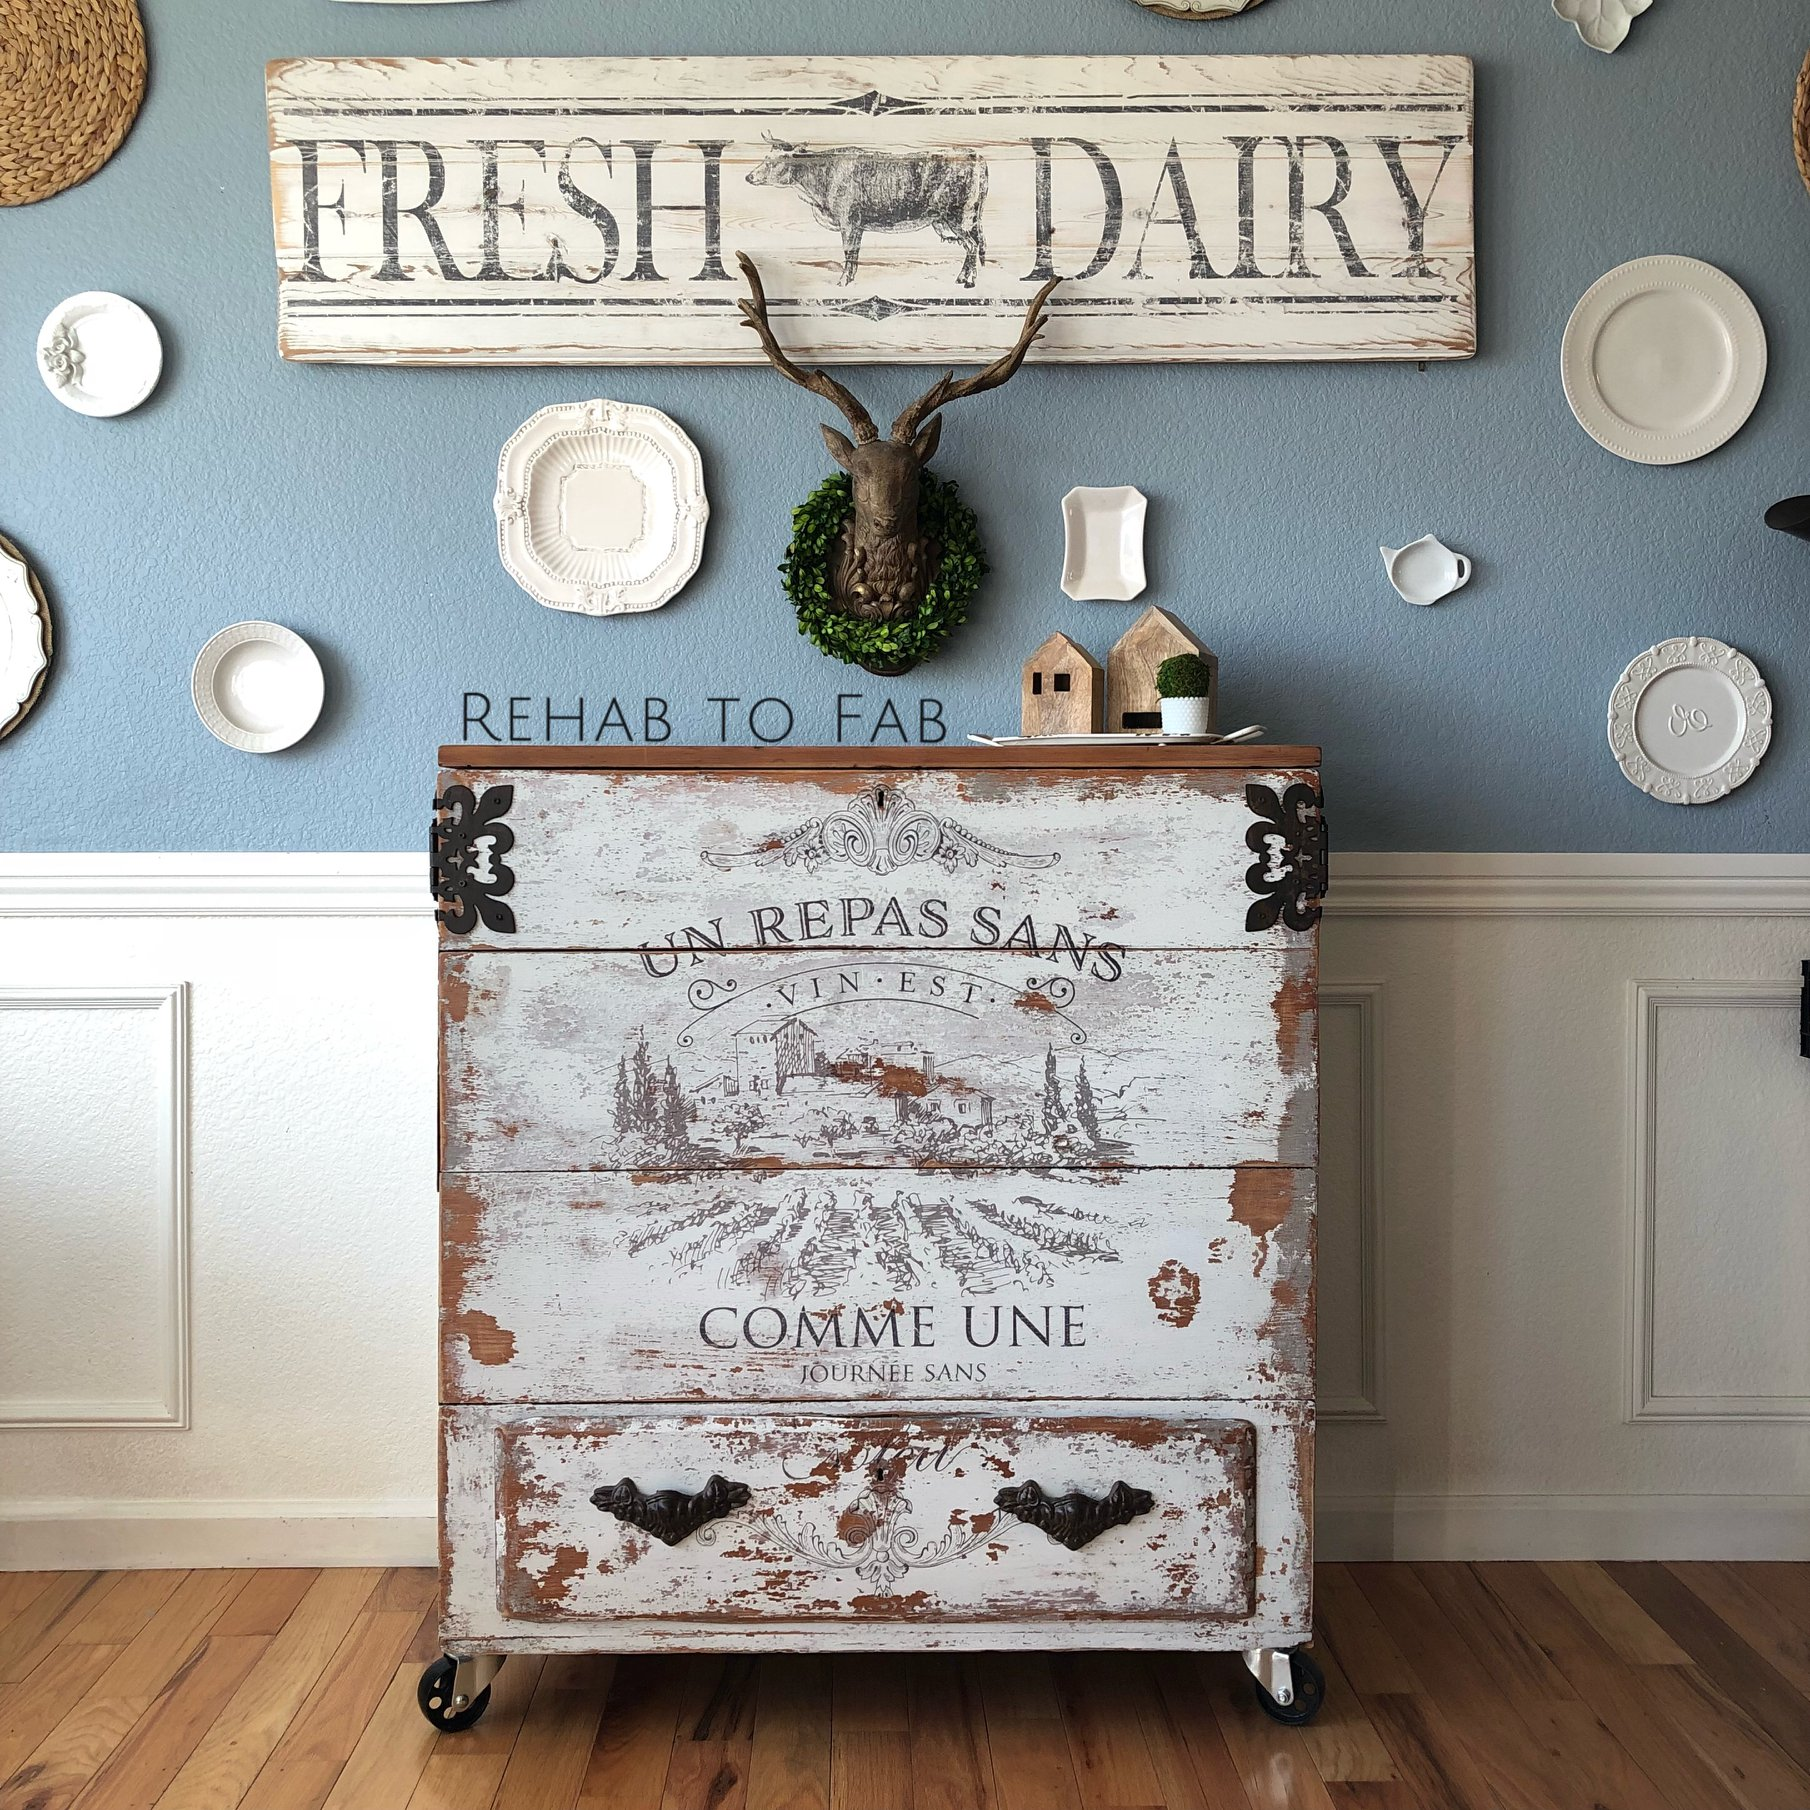 """""""A meal without wine is like a day without sun"""". Our new [re]design transfer, Vin (633097) translates to that lovely quote. And we are loving the way that it looks on this Rustic Chest by Stephanie Coon from Rehab to Fab. Read on to see what she did to transform this piece..."""